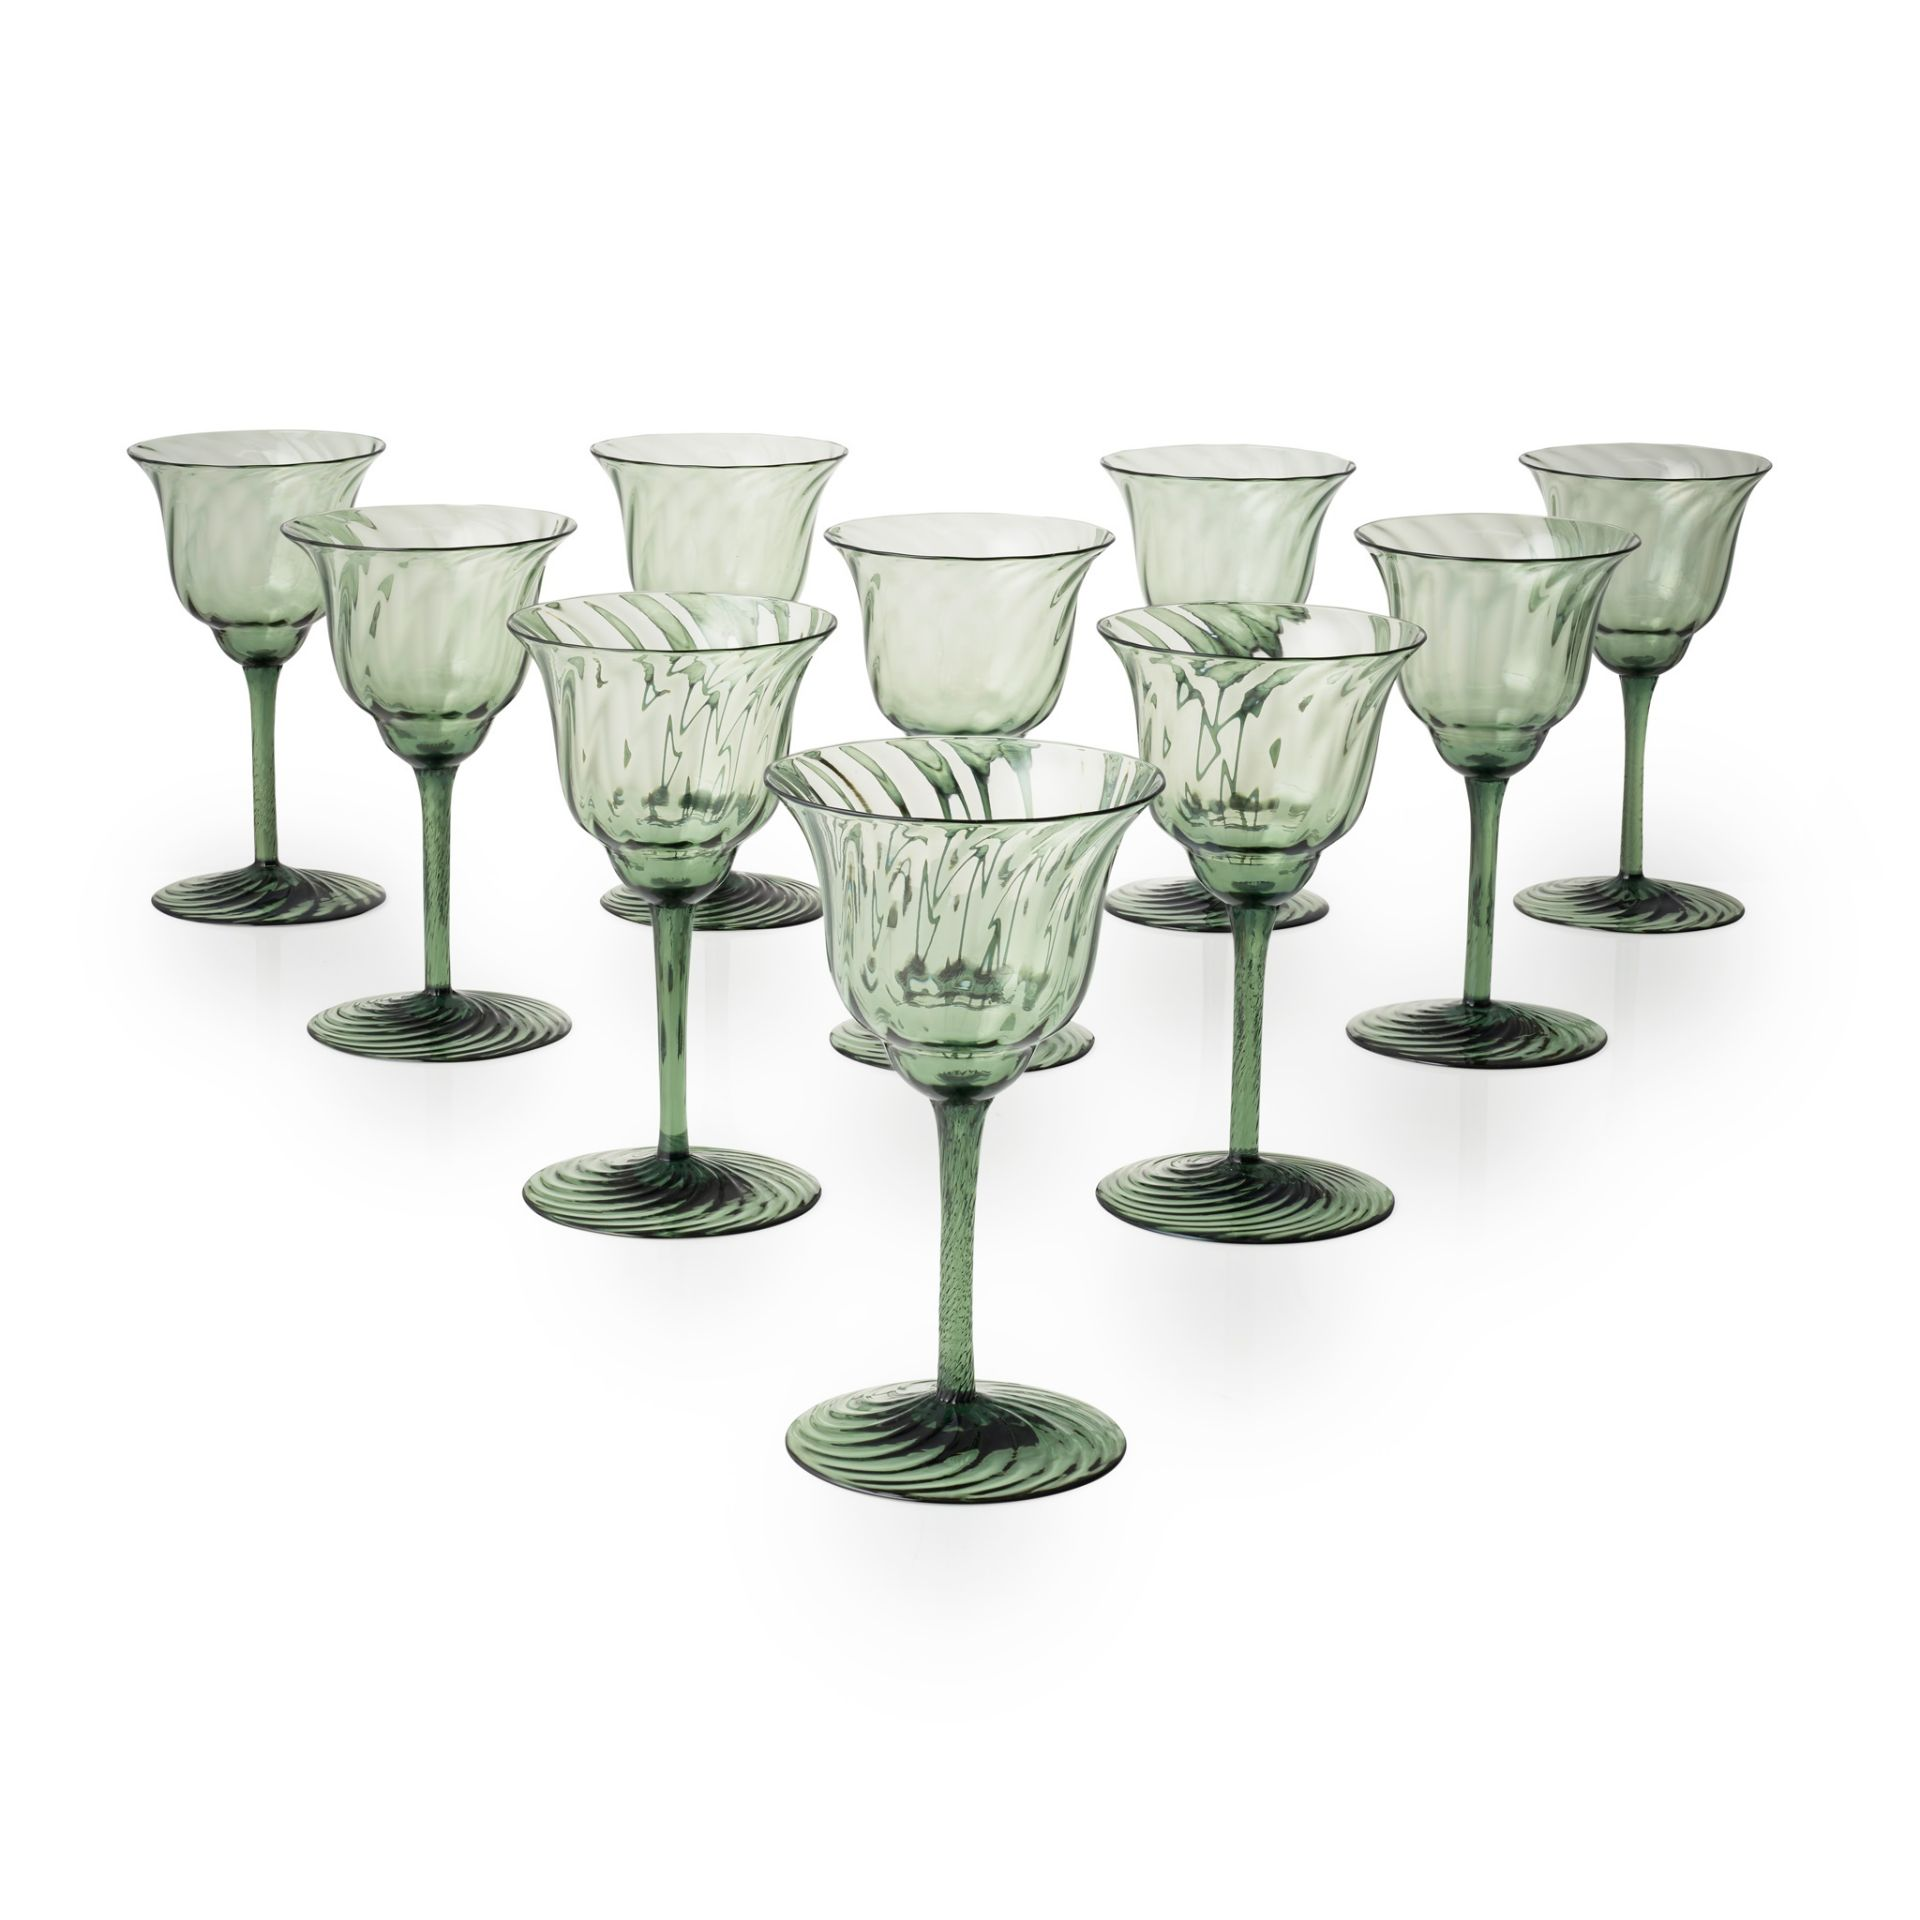 JAMES POWELL & SONS, WHITEFRIARS SET OF TEN DRINKING GLASSES, CIRCA 1900